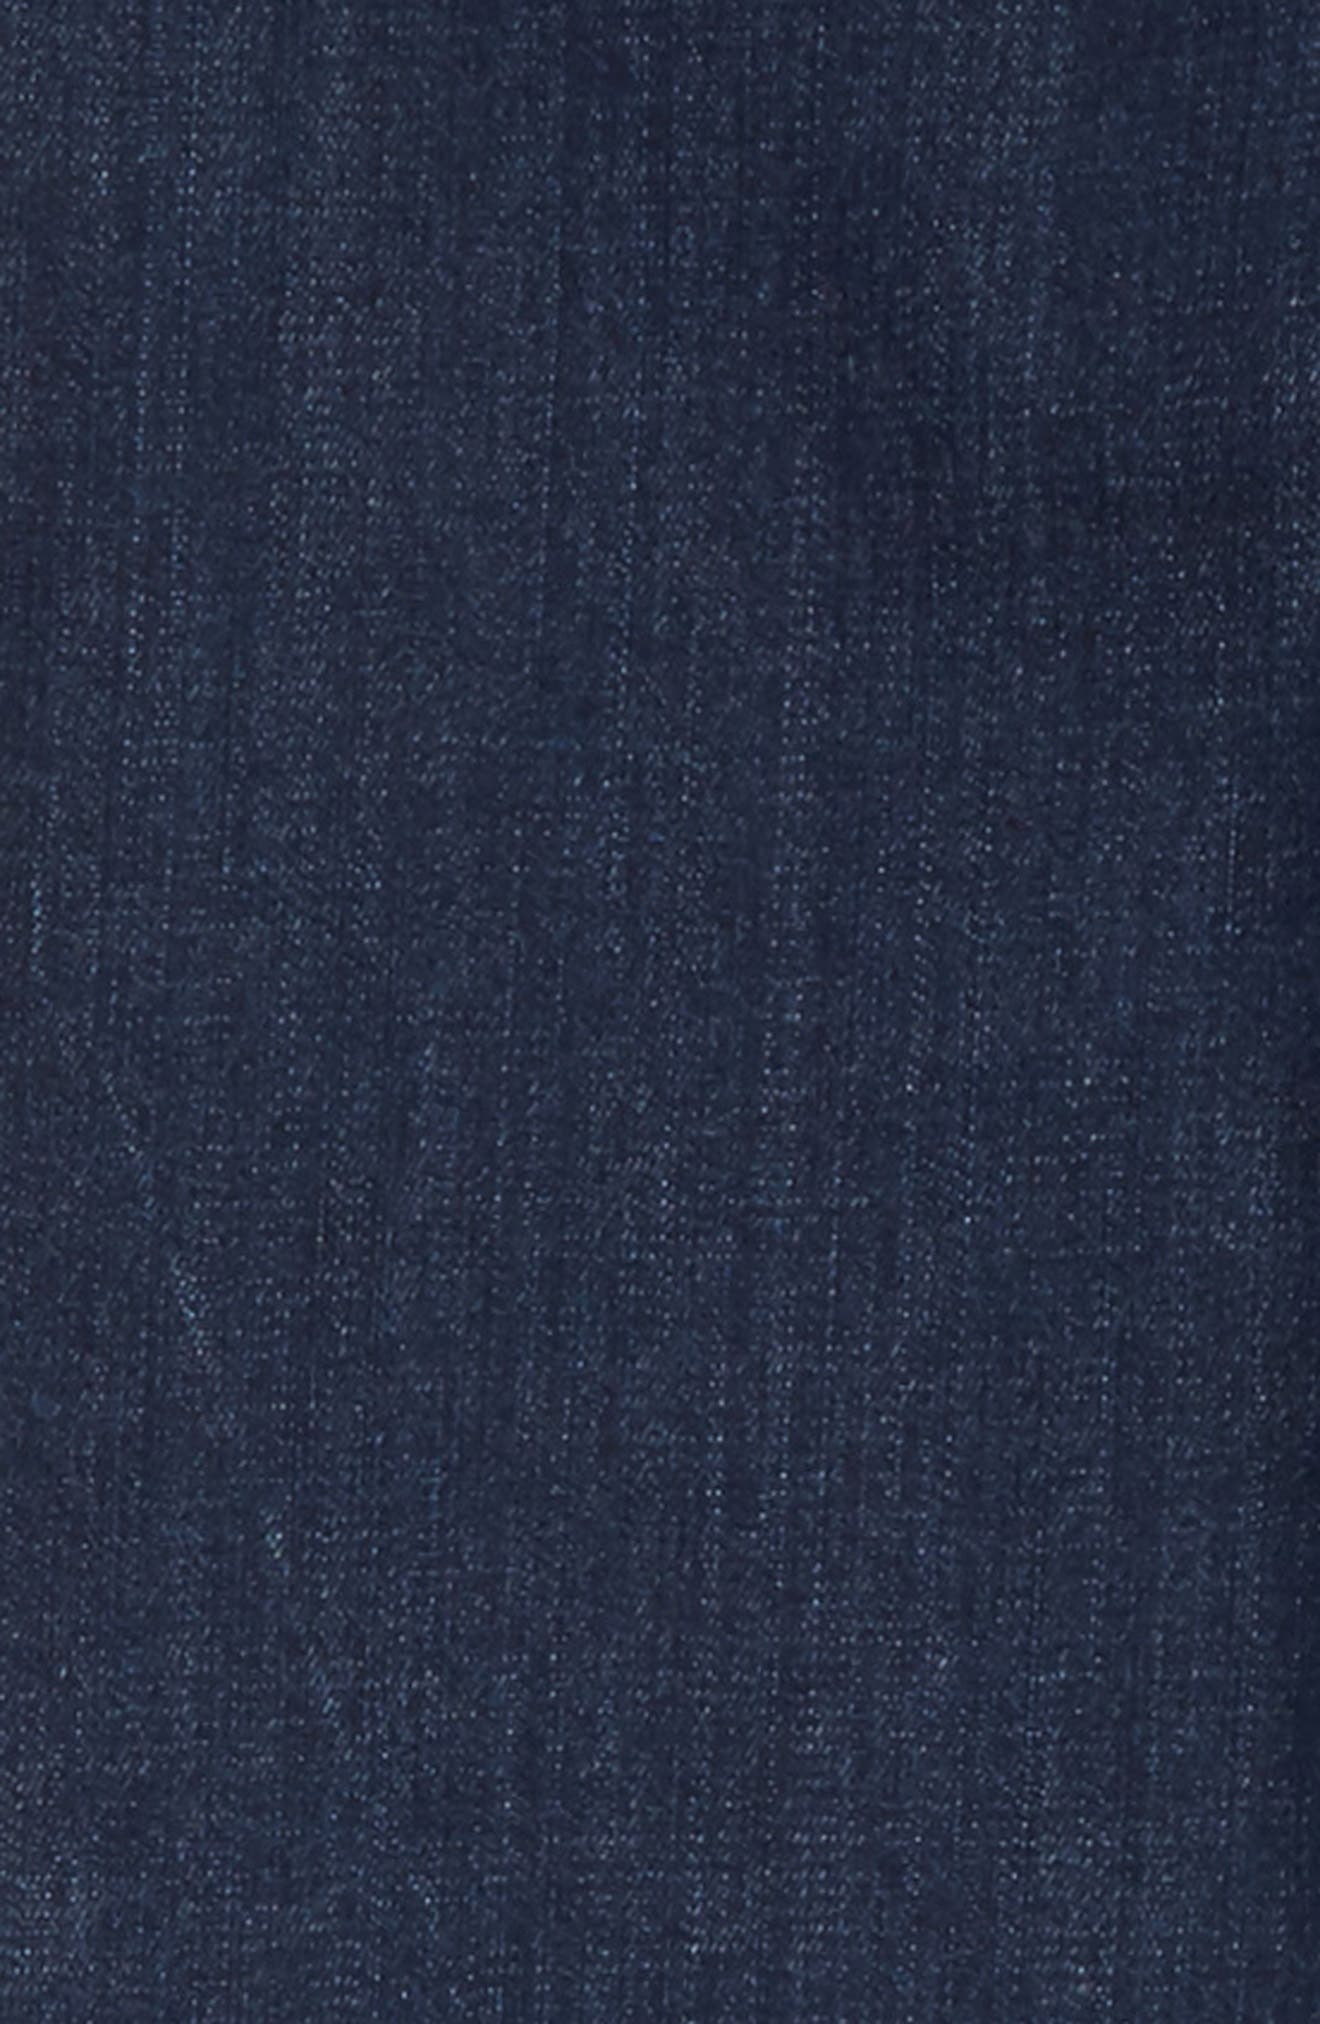 Dolly Skinny Jeans,                             Alternate thumbnail 2, color,